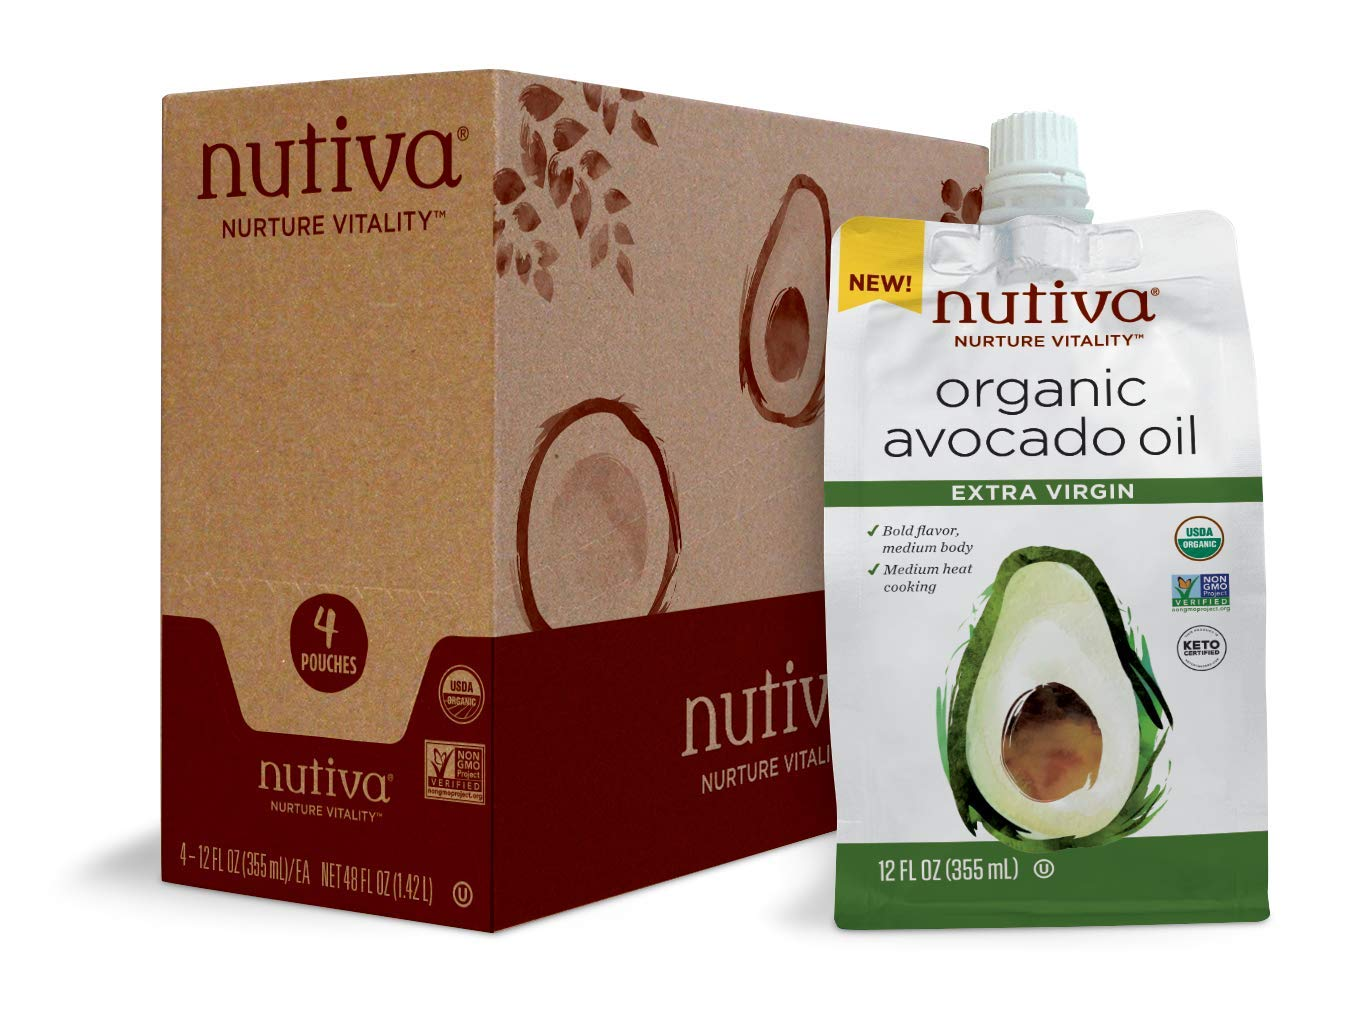 Nutiva Organic Avocado Oil Extra Virgin Oz Pack Max 43% OFF Fl 12 Pouch 4 Large-scale sale